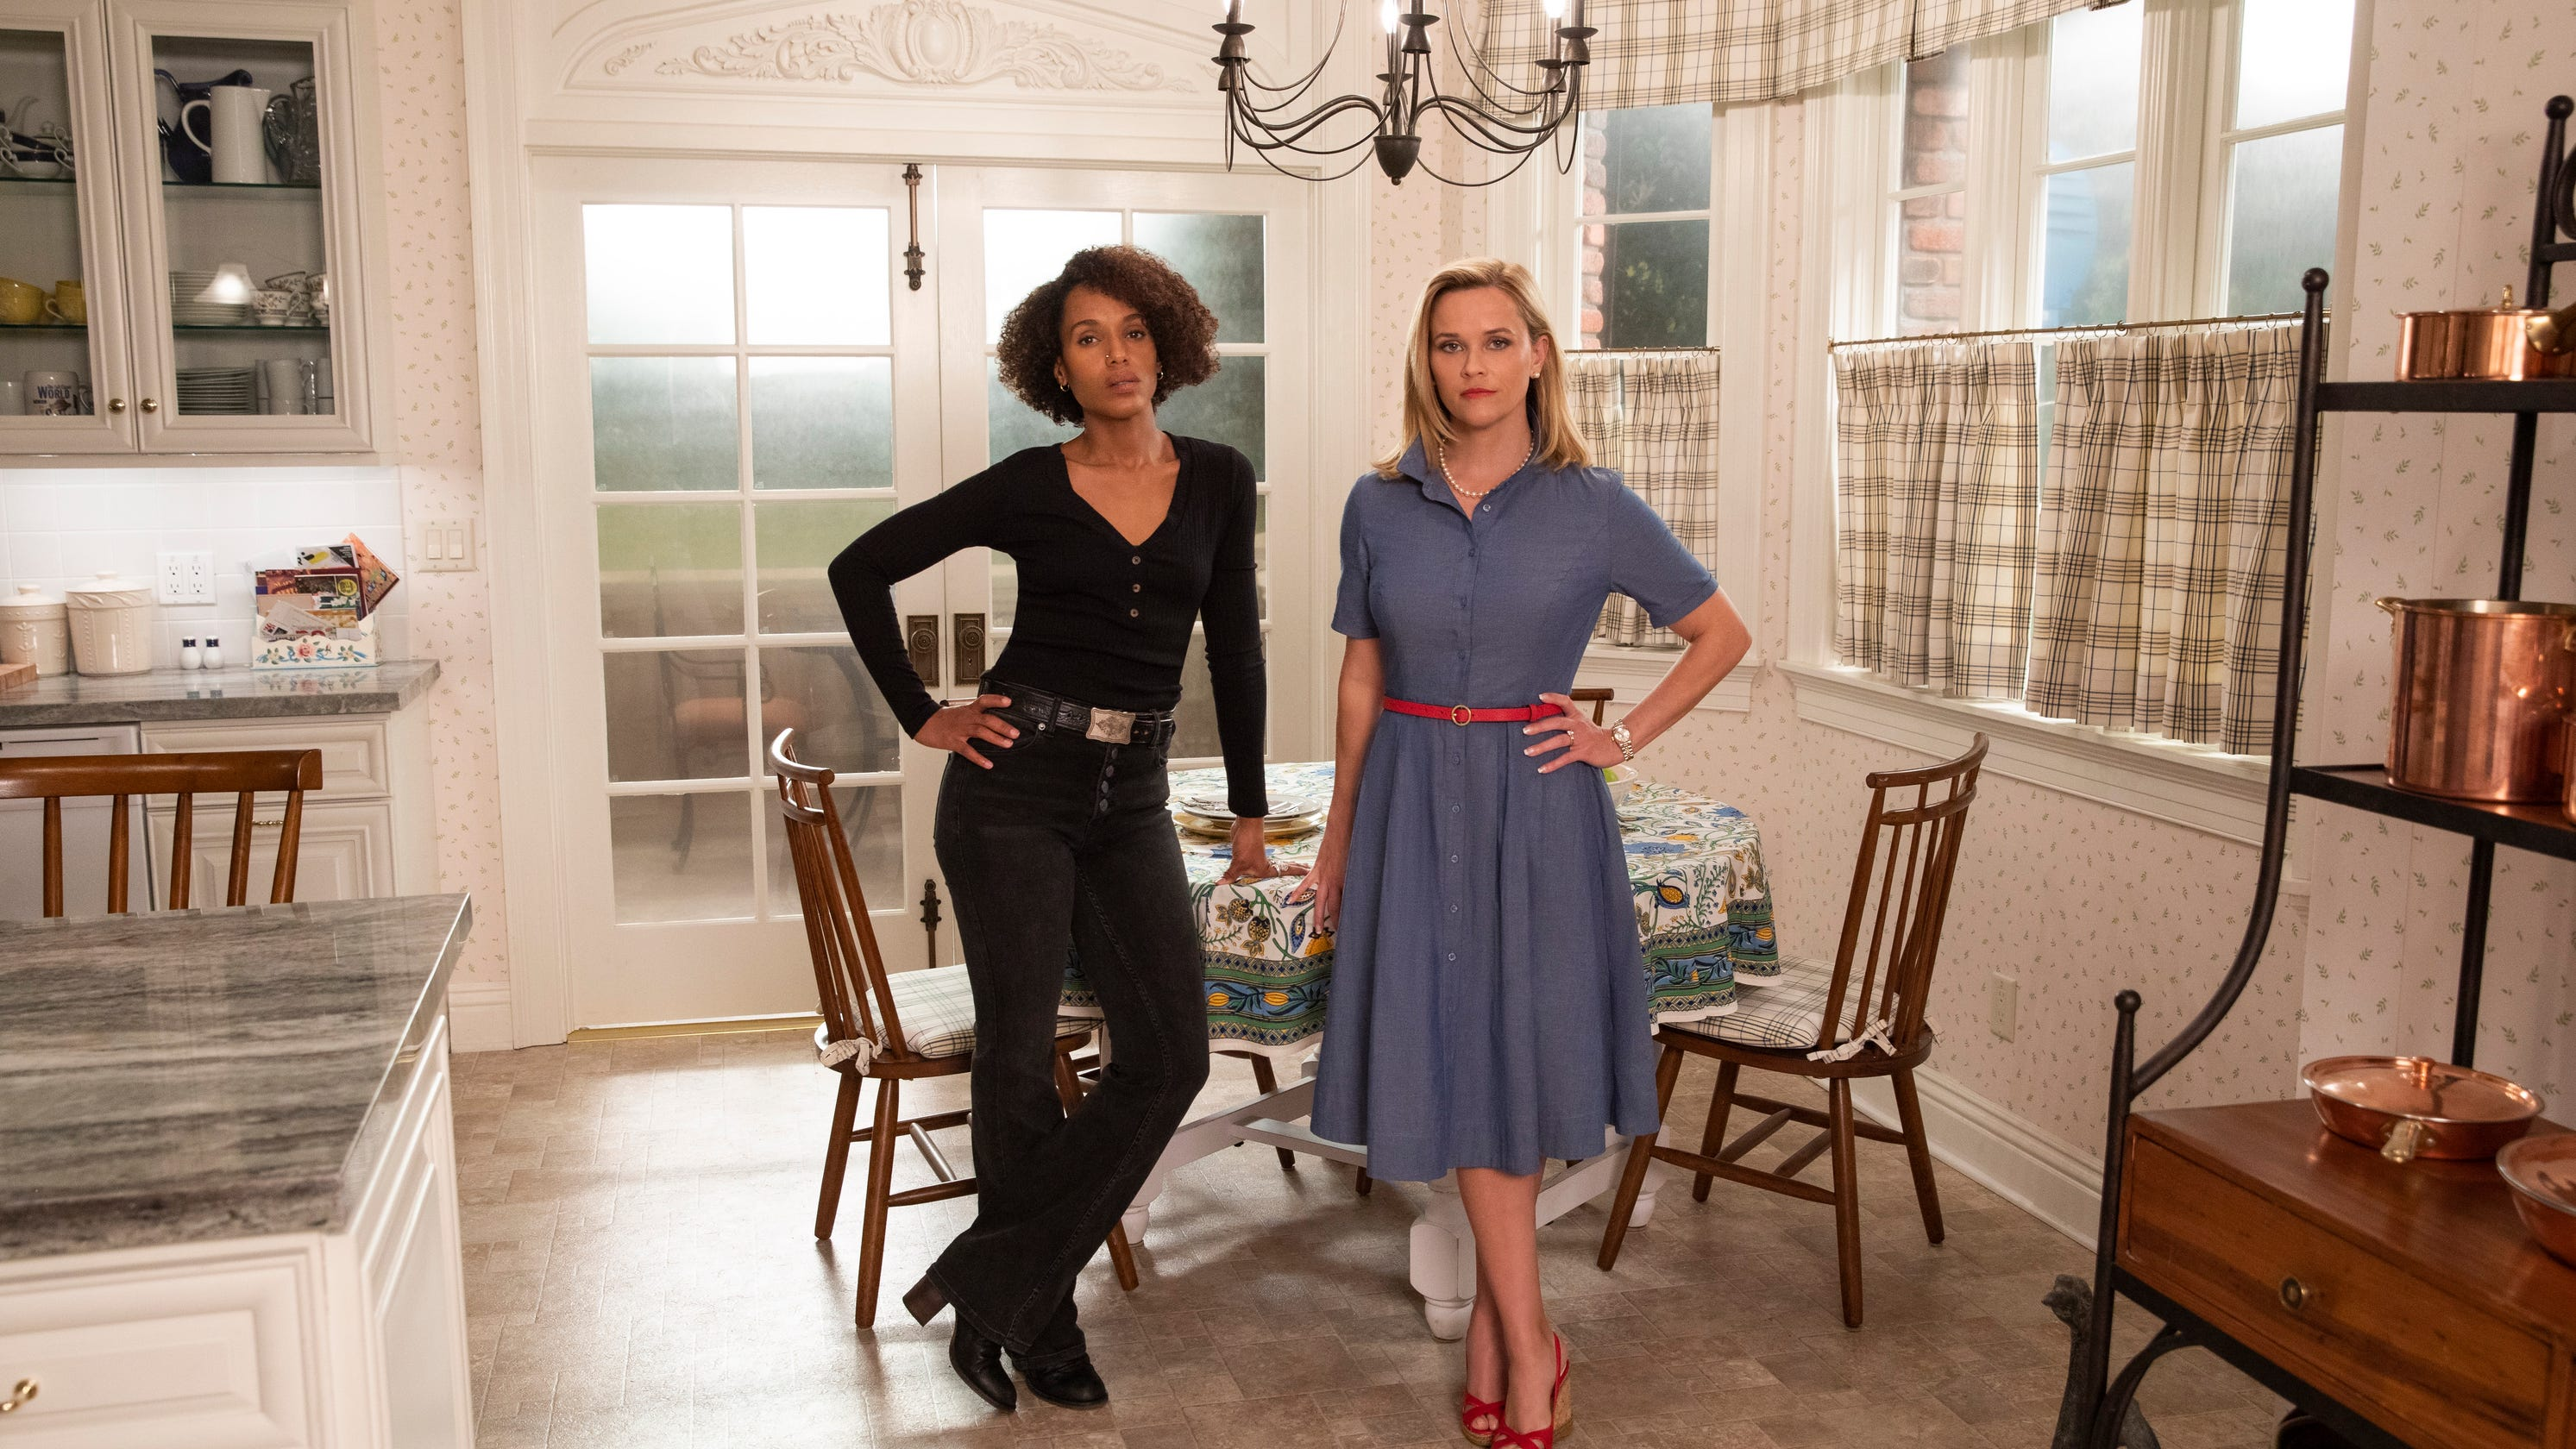 Coronavirus: Reese Witherspoon, Kerry Washington on canceled premiere, 'social distancing'